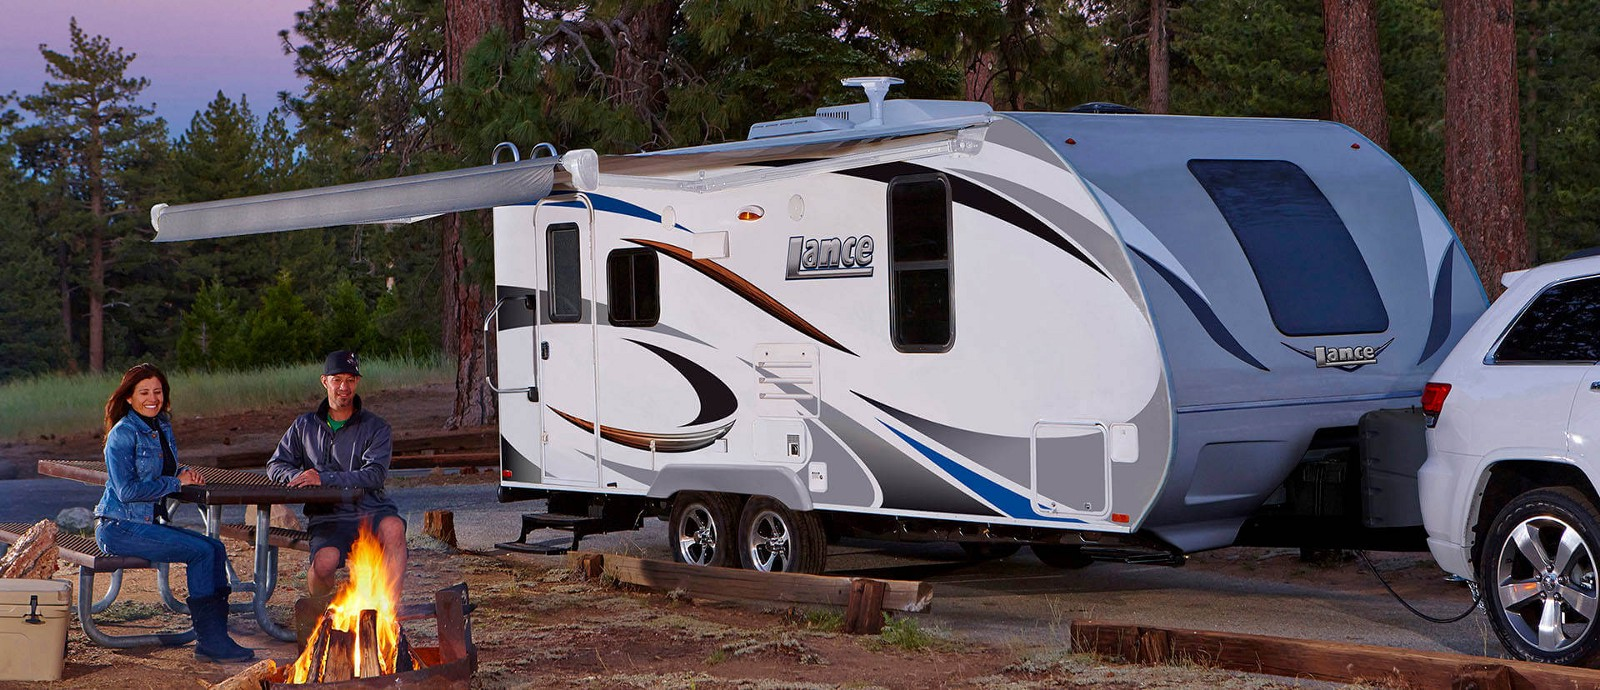 Can I Rent Out My Travel Trailer Mark Jenney Medium